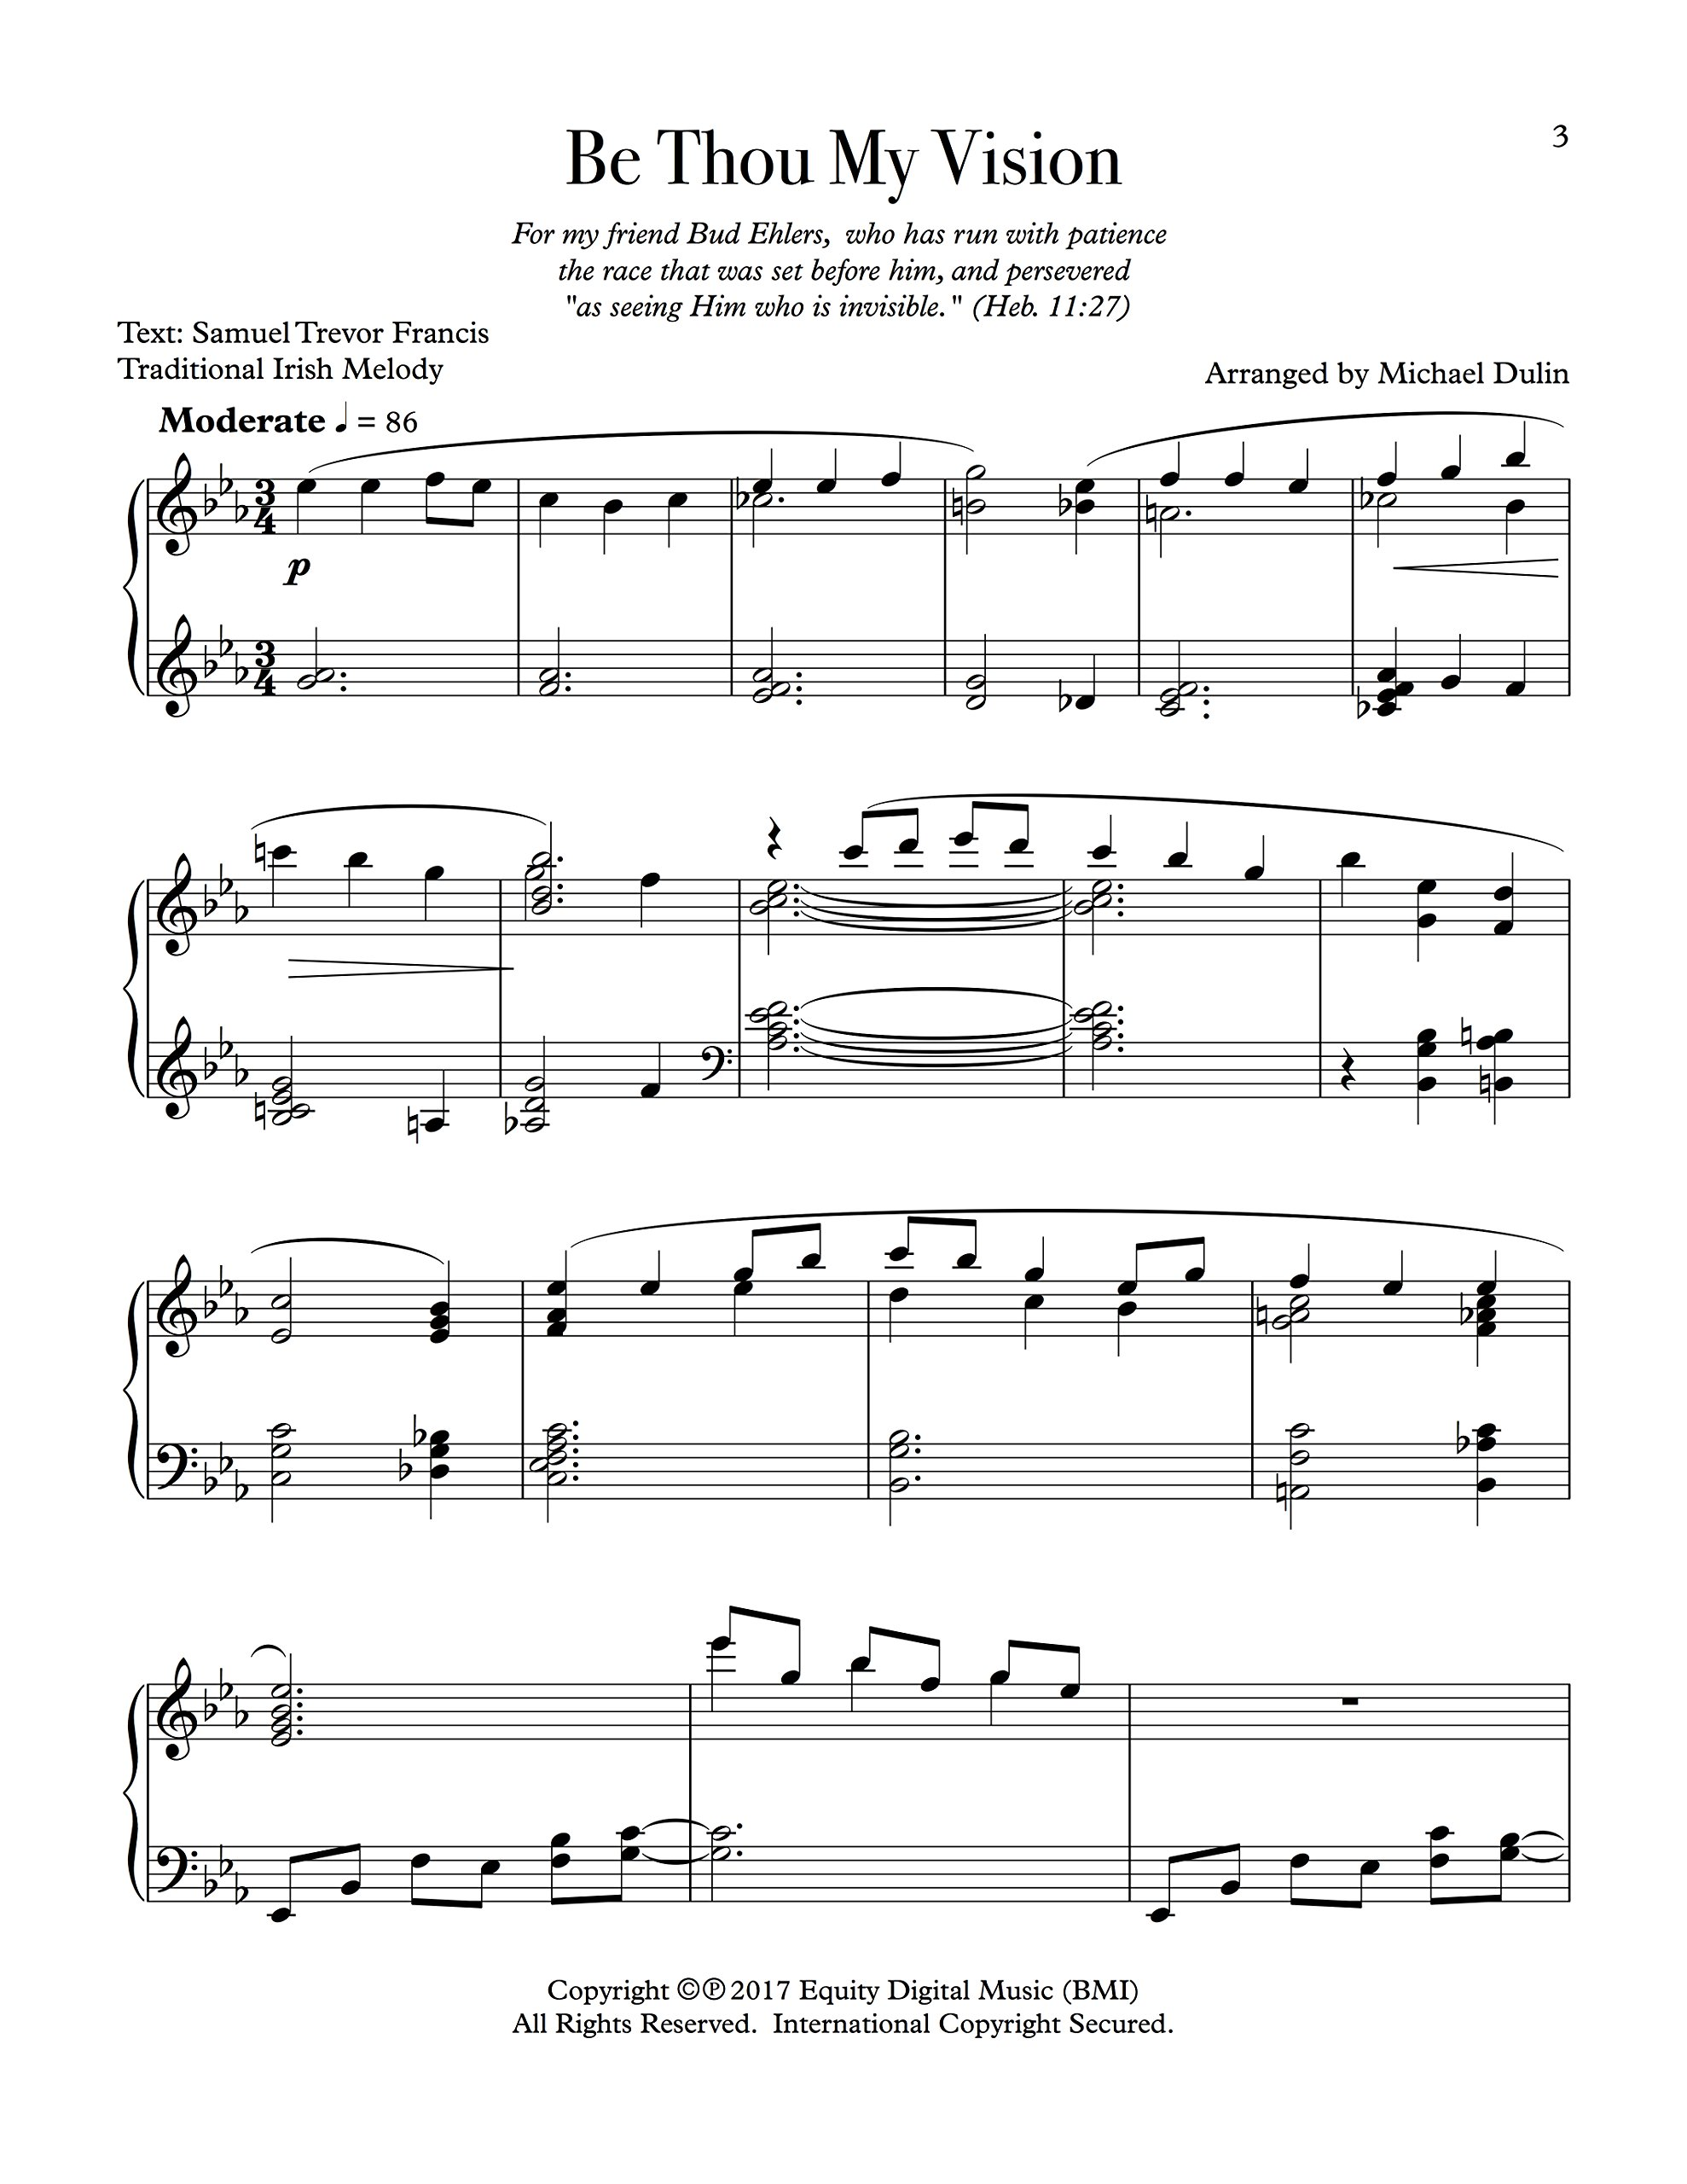 Beautiful Be Thou My Vision Hymn Settings For Solo Piano Play Piano Solo Sheet Music Book Long Performance Life Instruction Books & Media